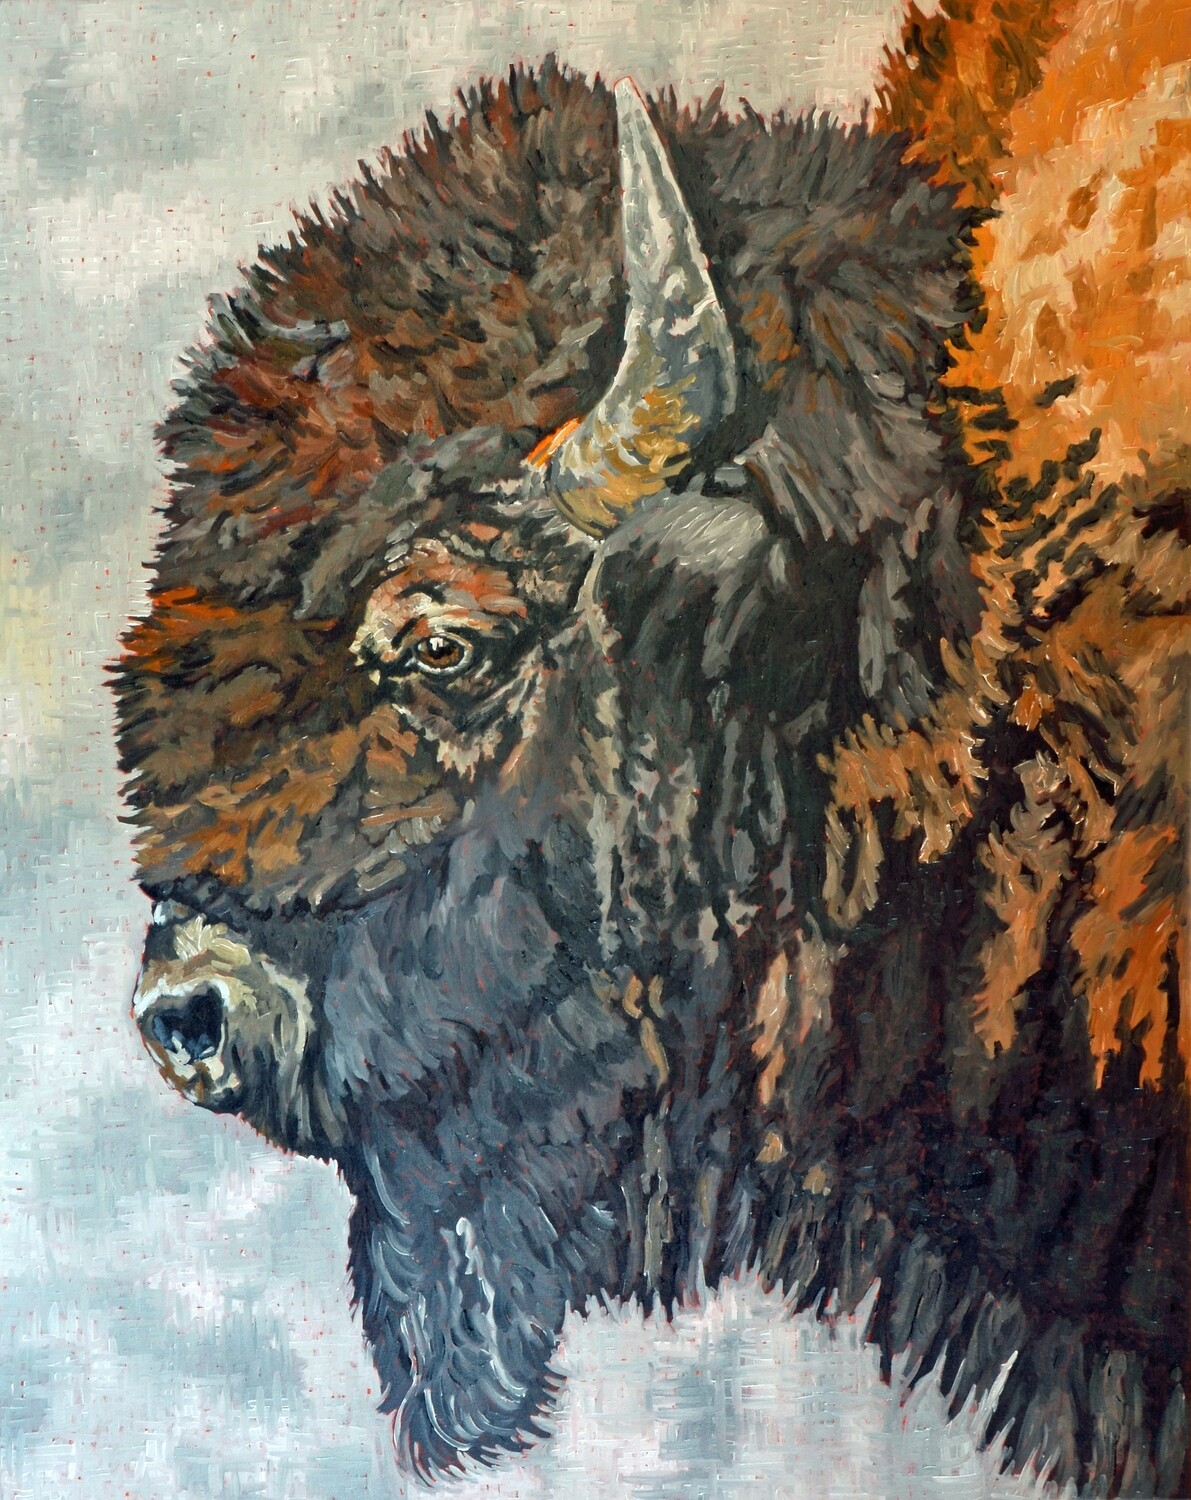 Bison 2, oil on canvas, 48x60